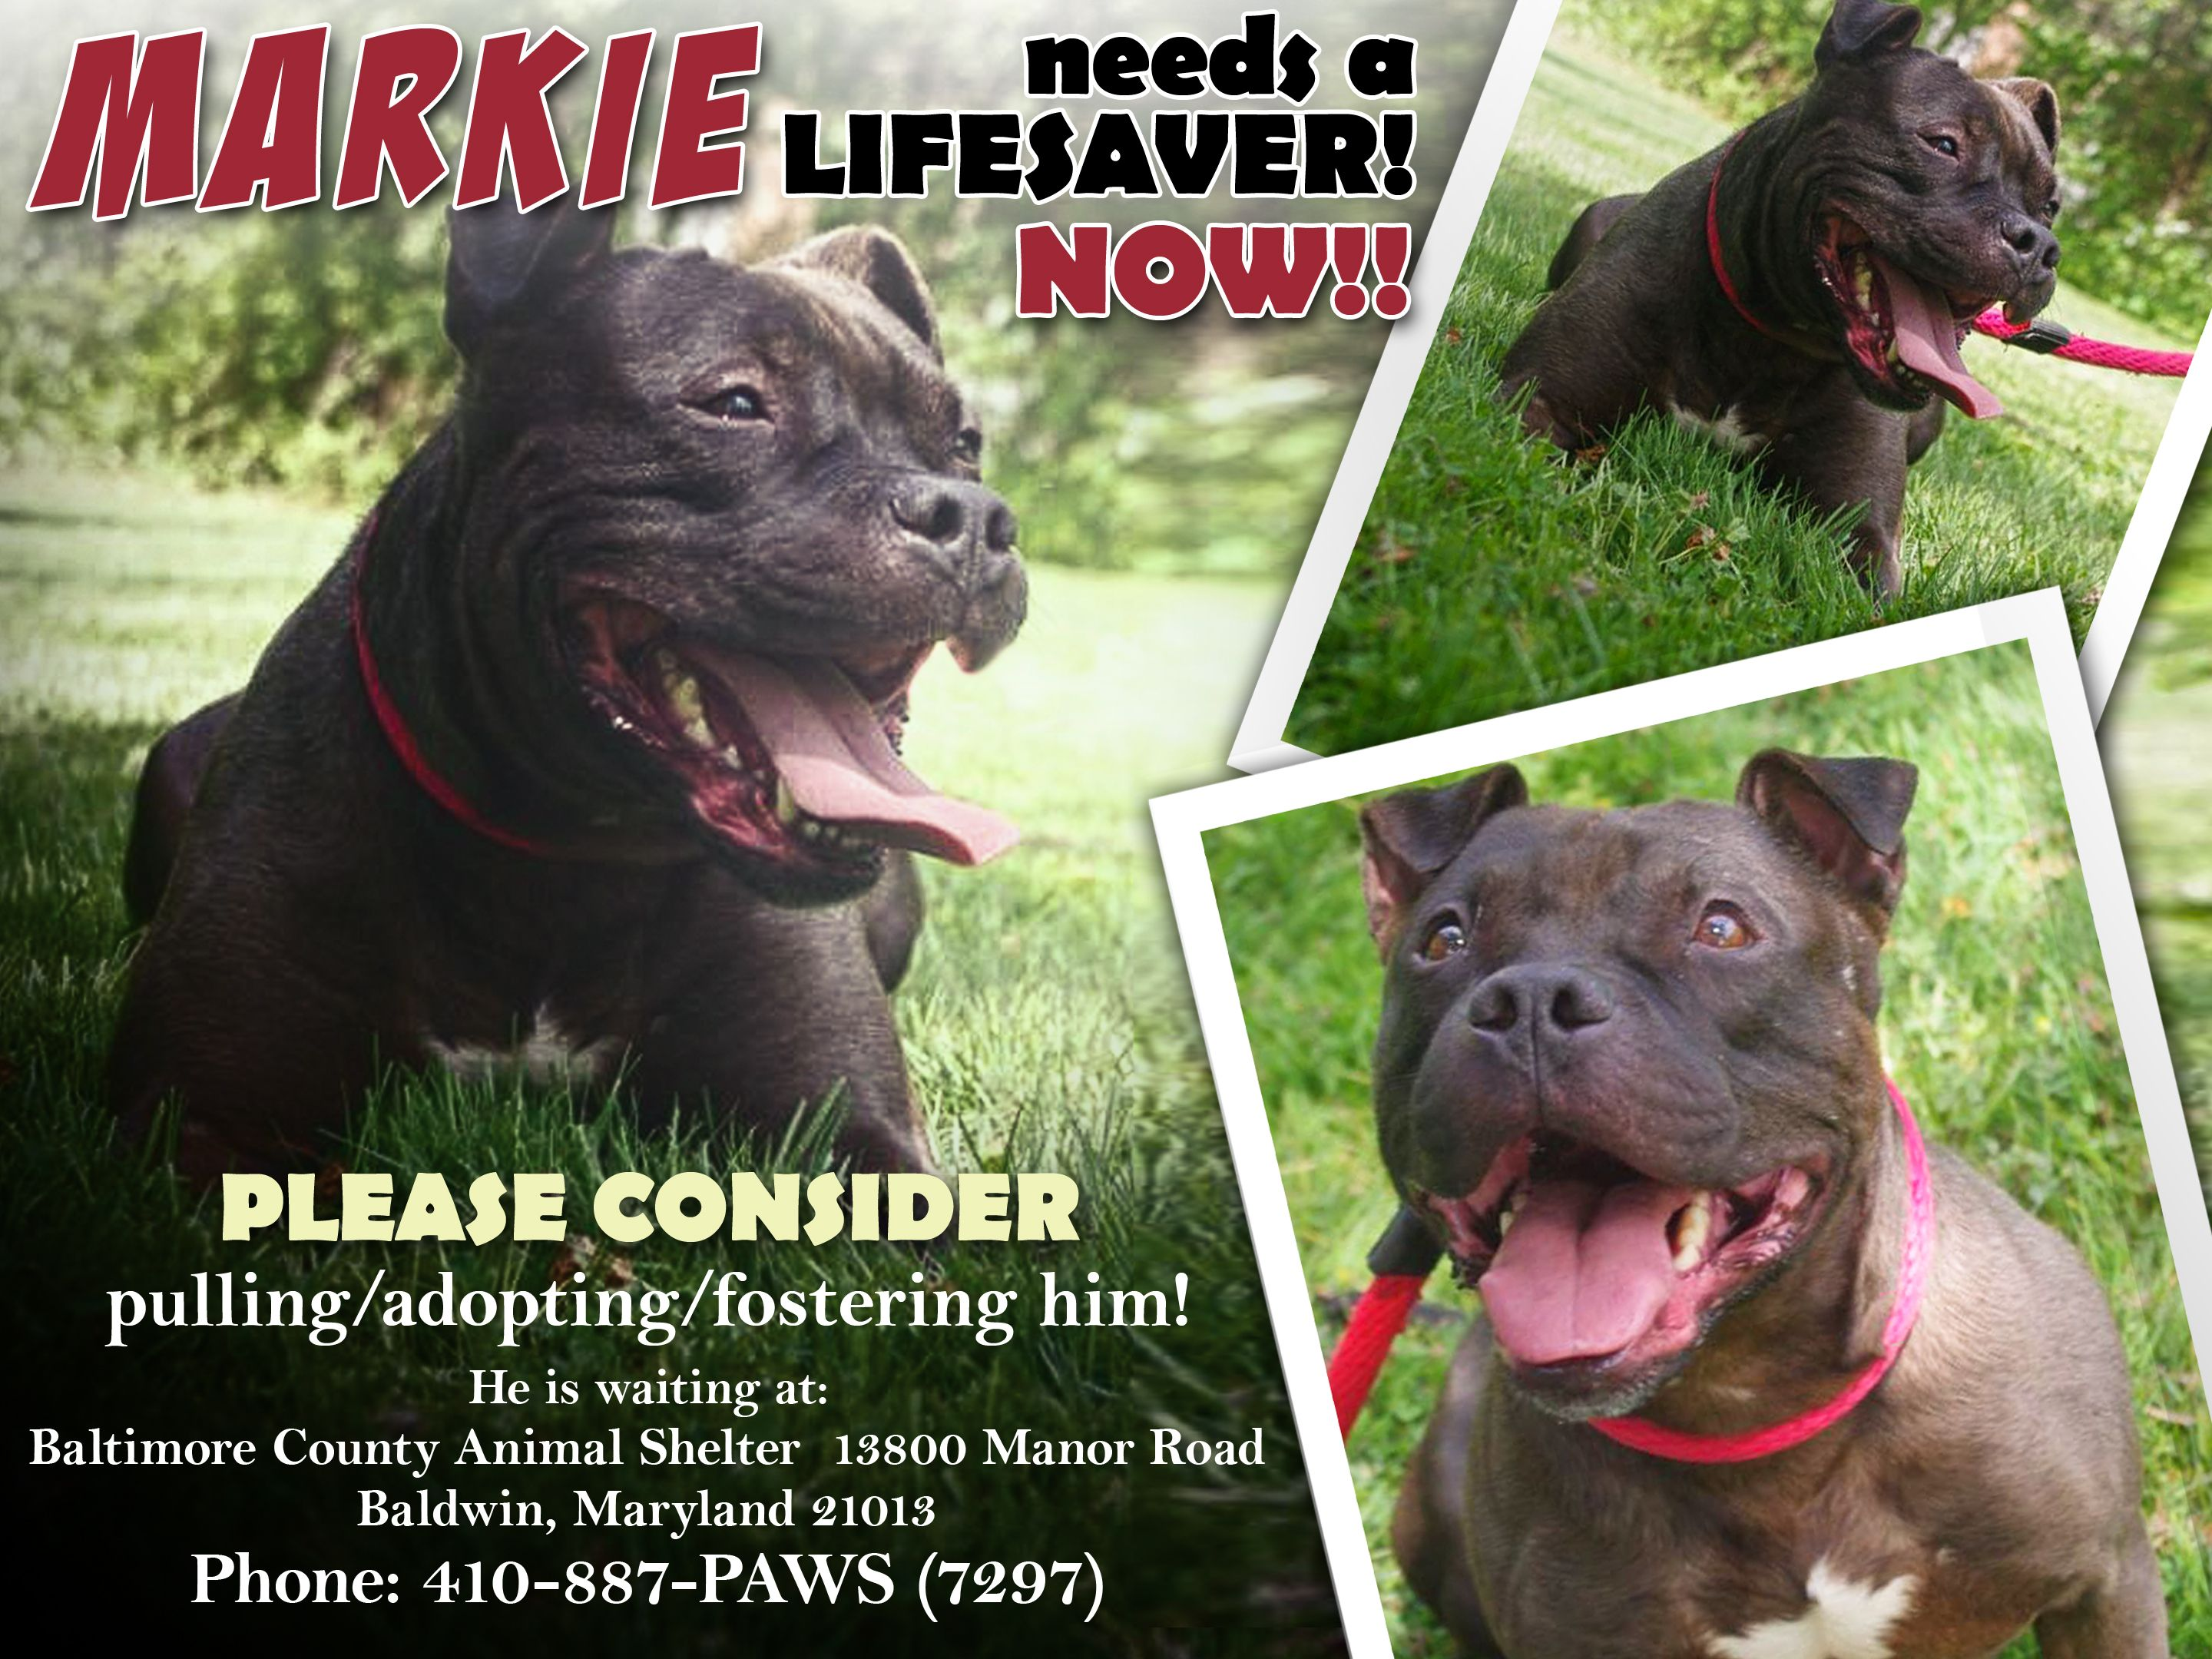 In Baltimore, MD MARKIE IS NEXT ON THE LIST TO BE GONE